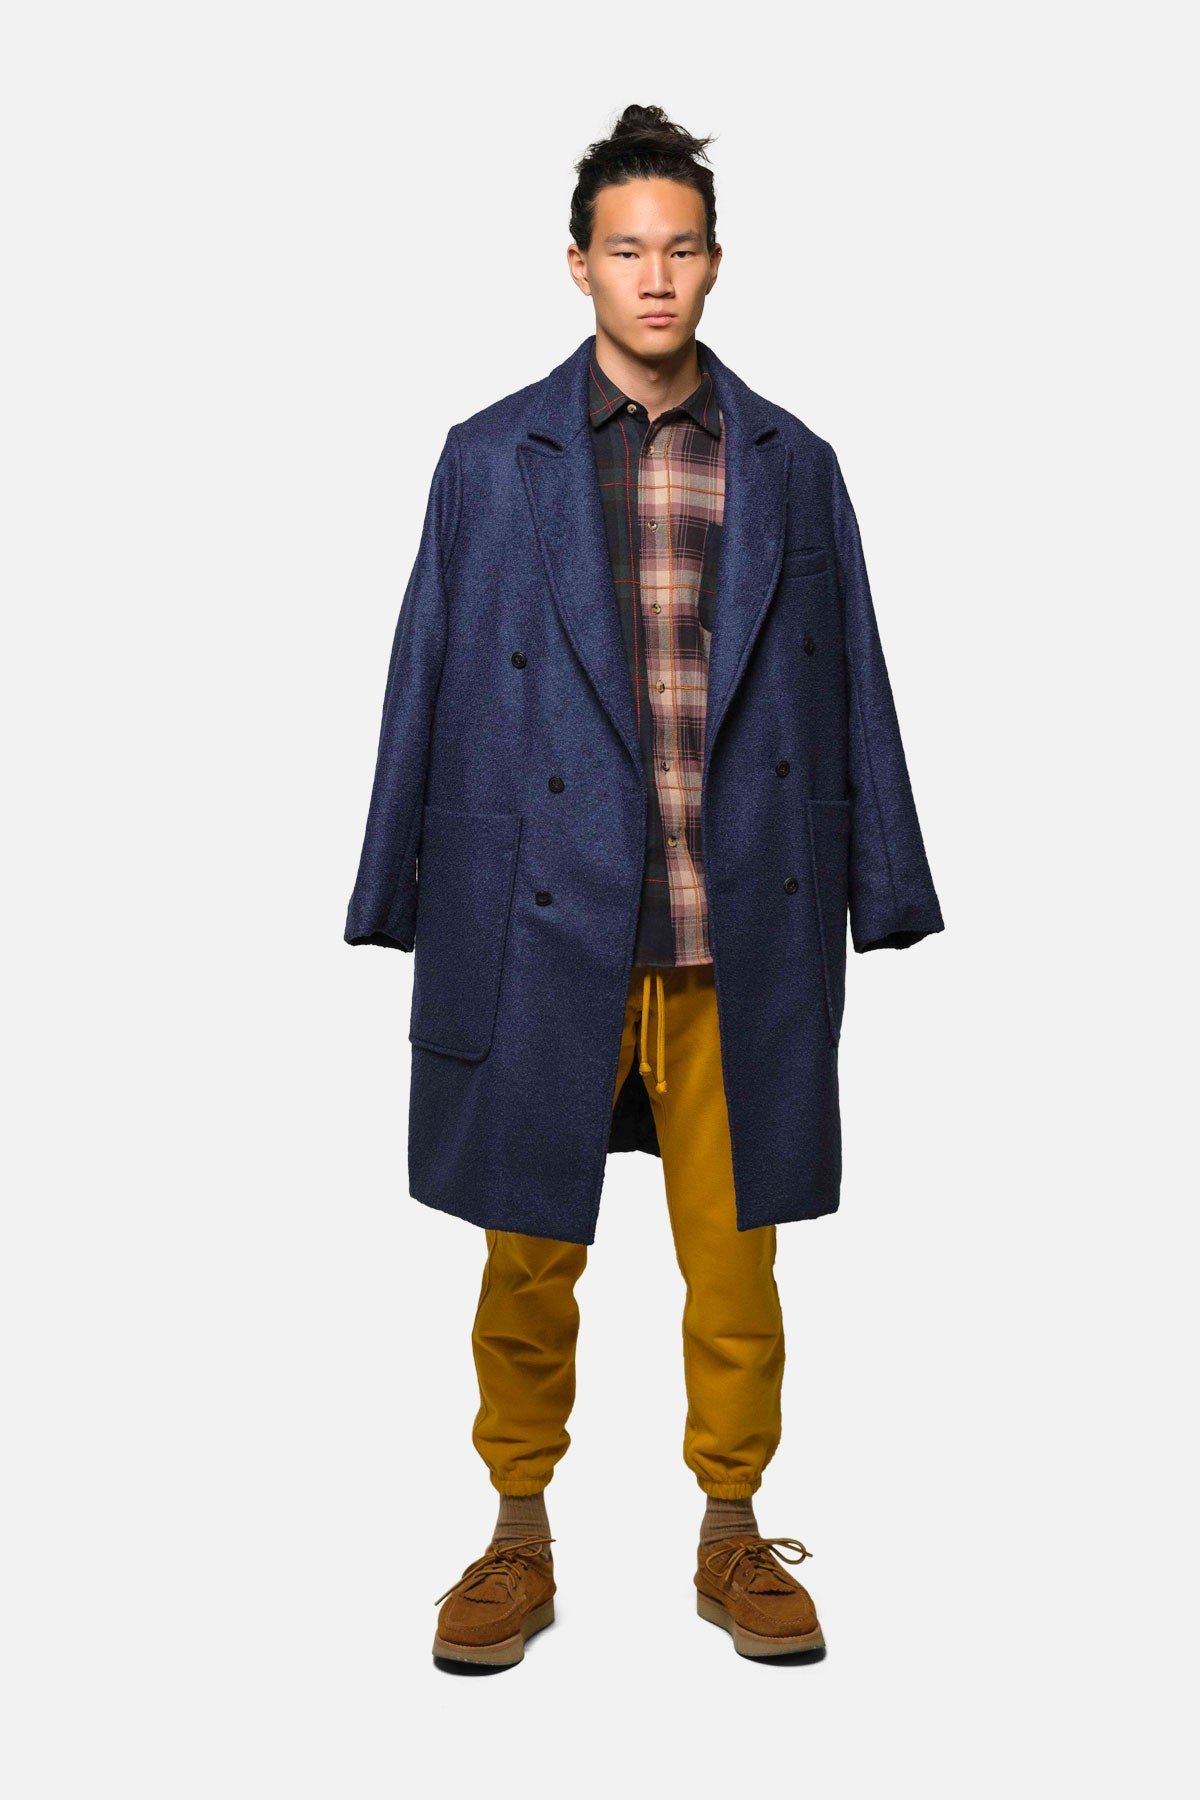 1905 IN NAVY-PURPLE IN PLAID MIX - Fortune Goods